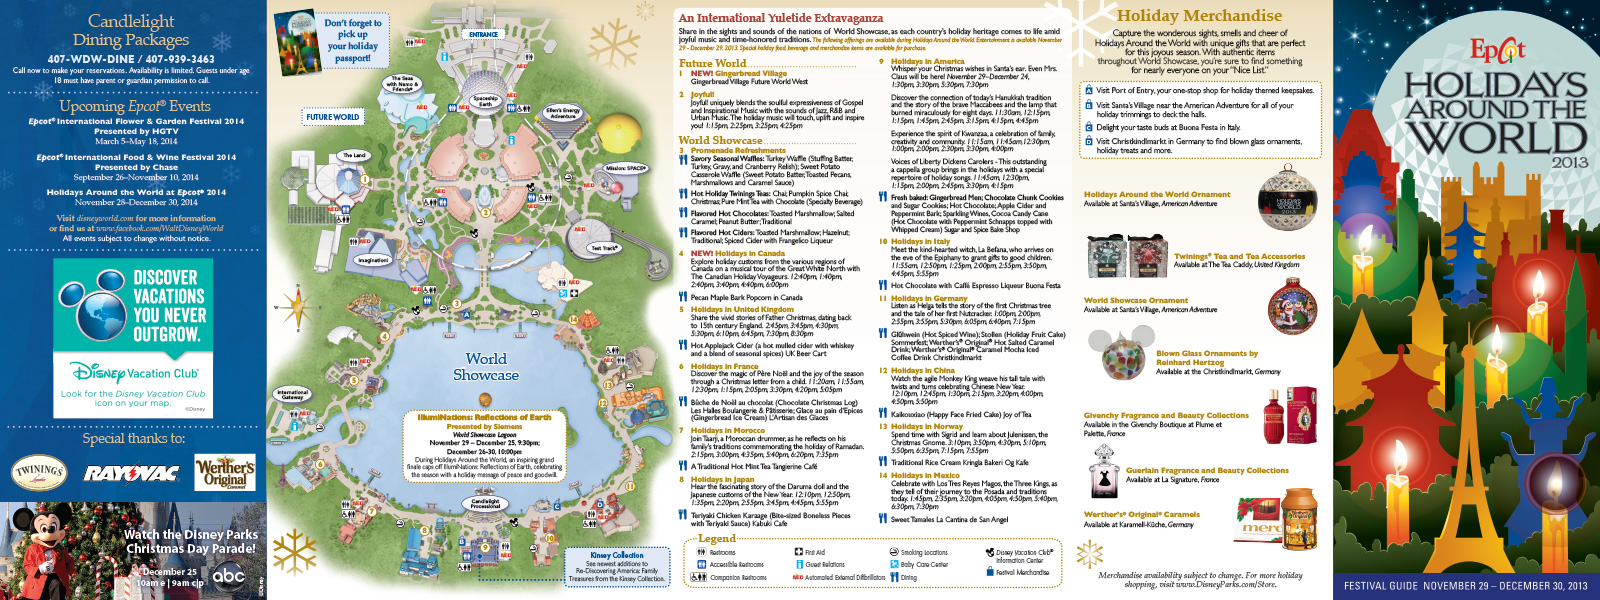 Epcot Food And Wine Festival Schedule